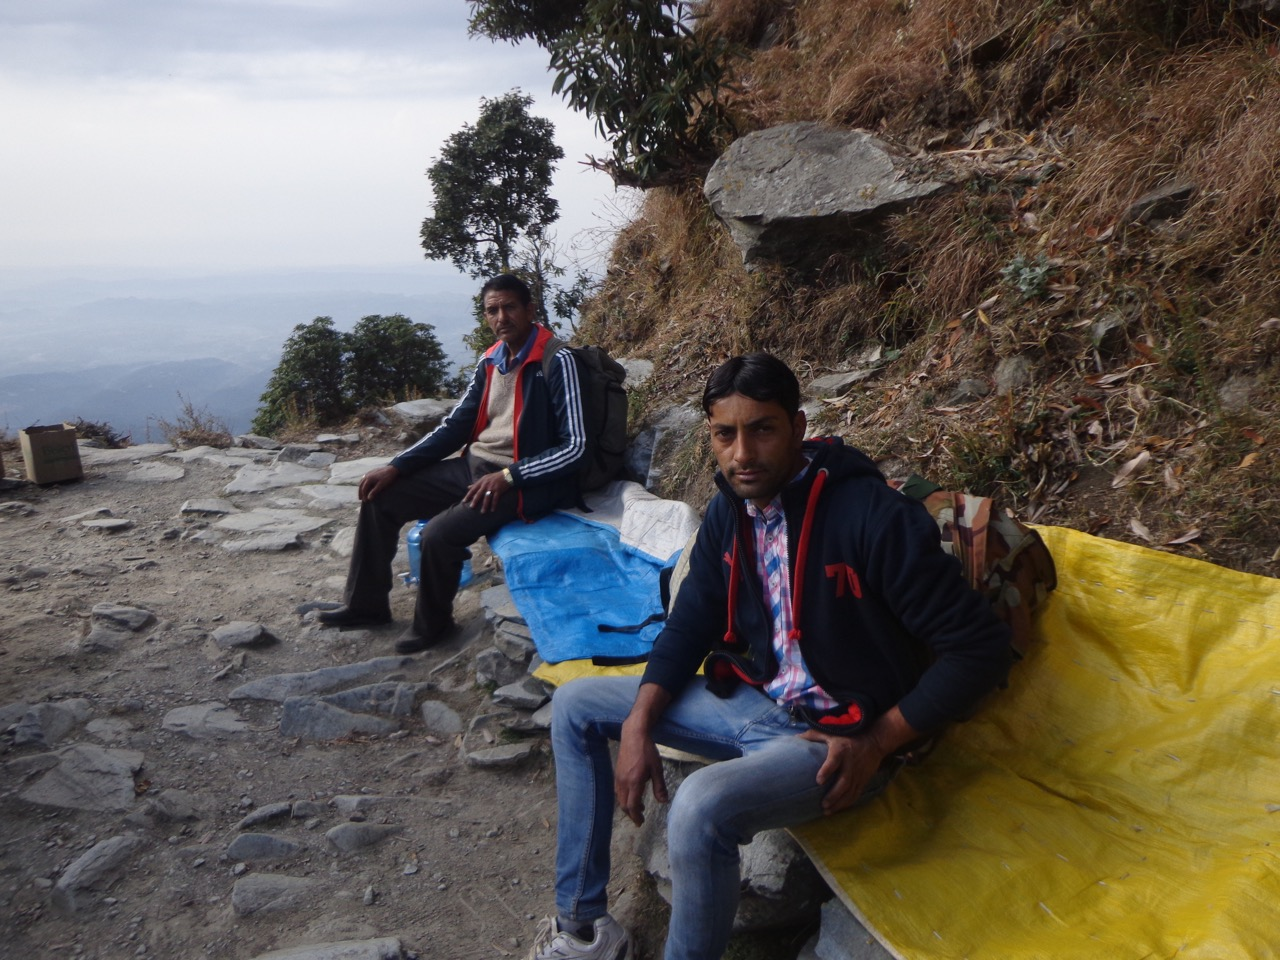 Purushottam and Kuldeep taking a break.